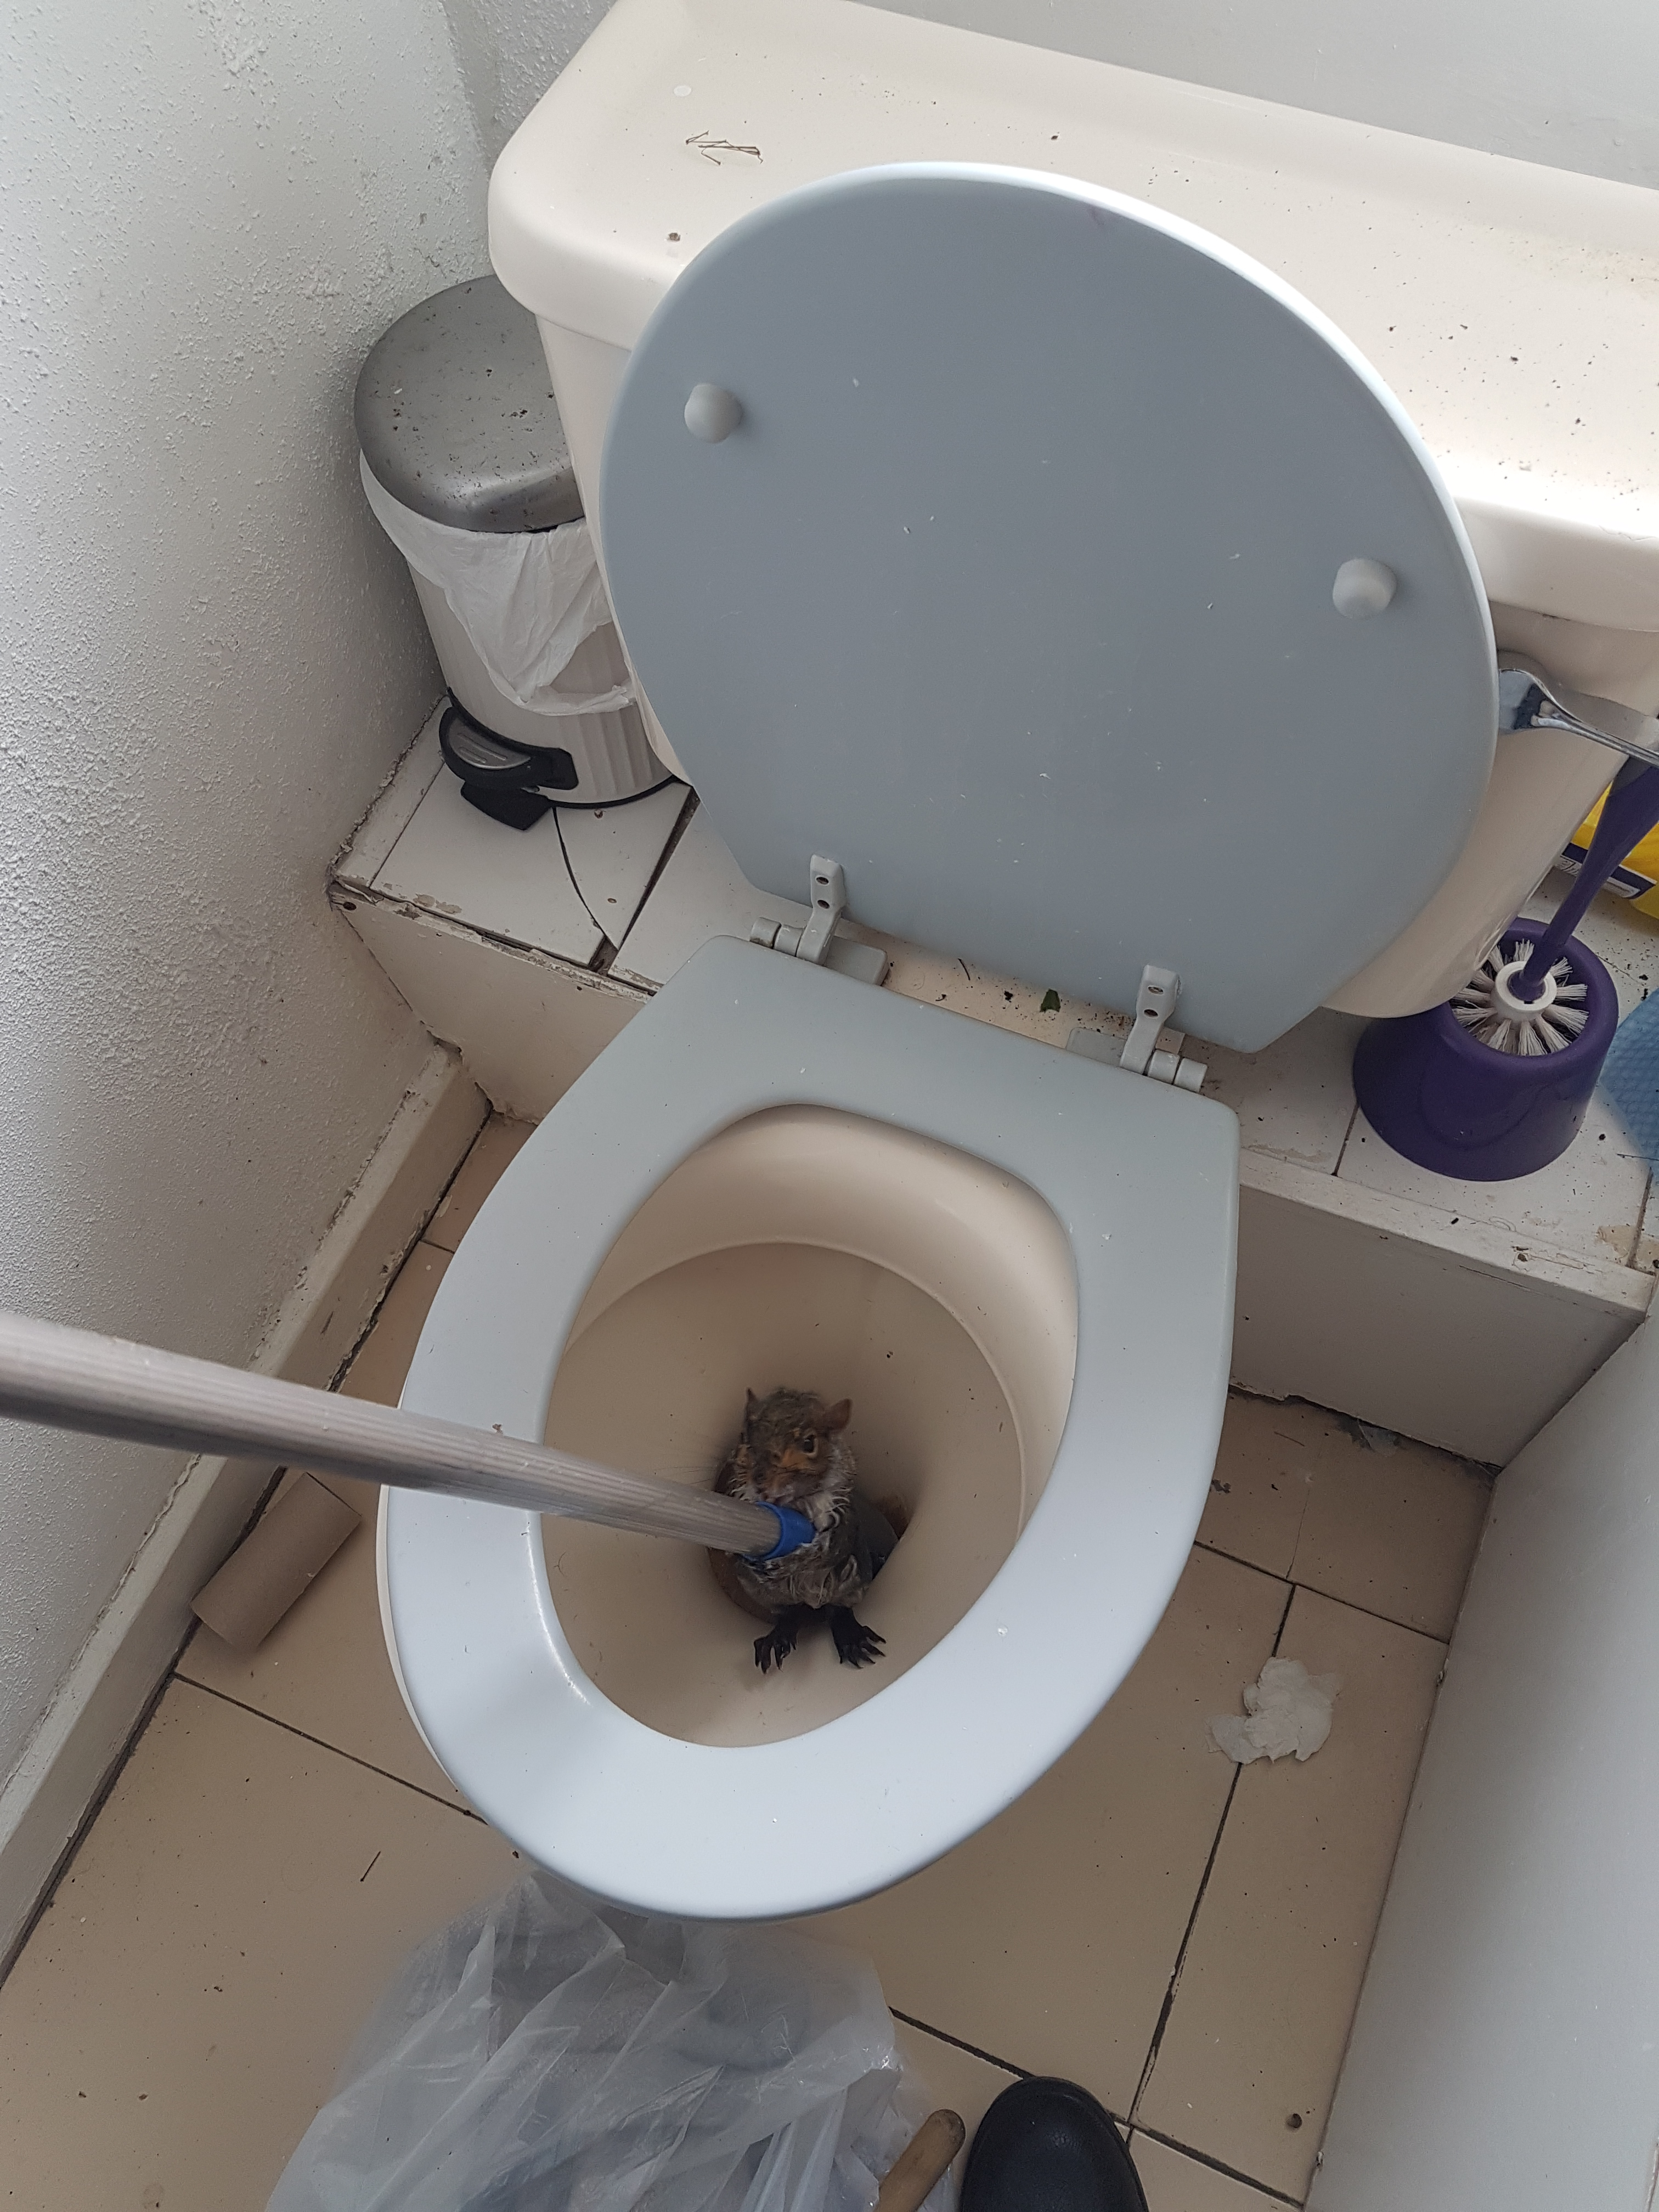 A squirrel stuck in a toilet at a student house (RSPCA)